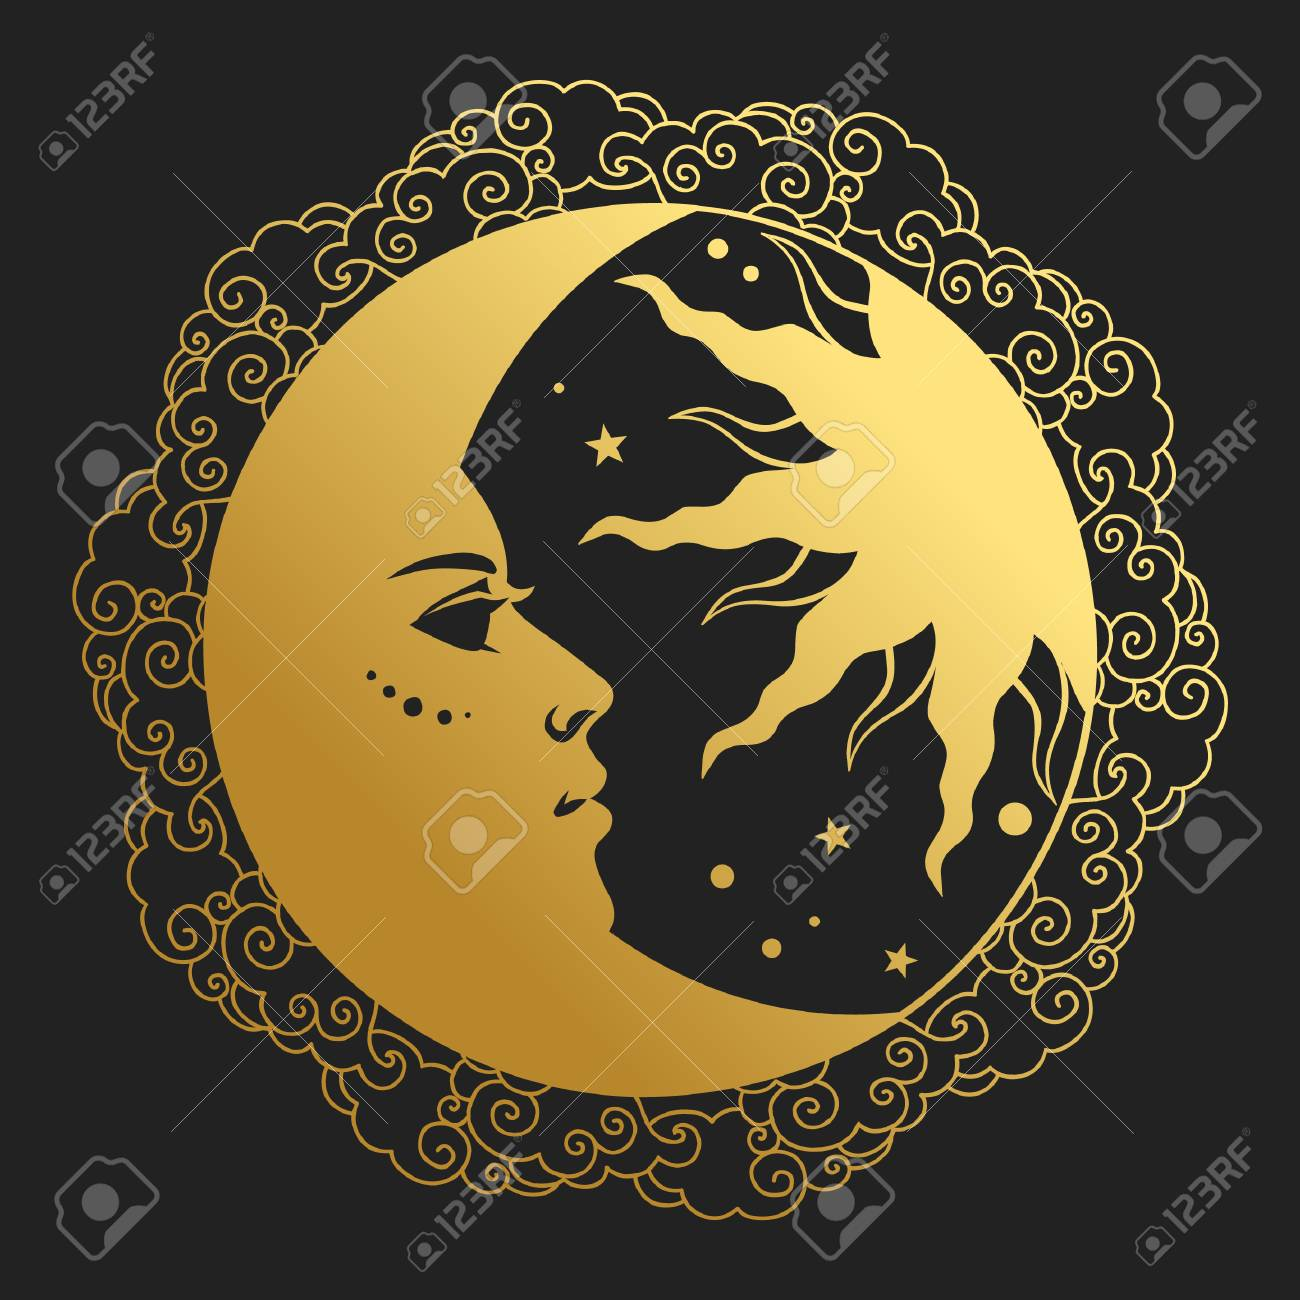 Moon and Sun in round frame. Vector illustration in retro style - 98834020